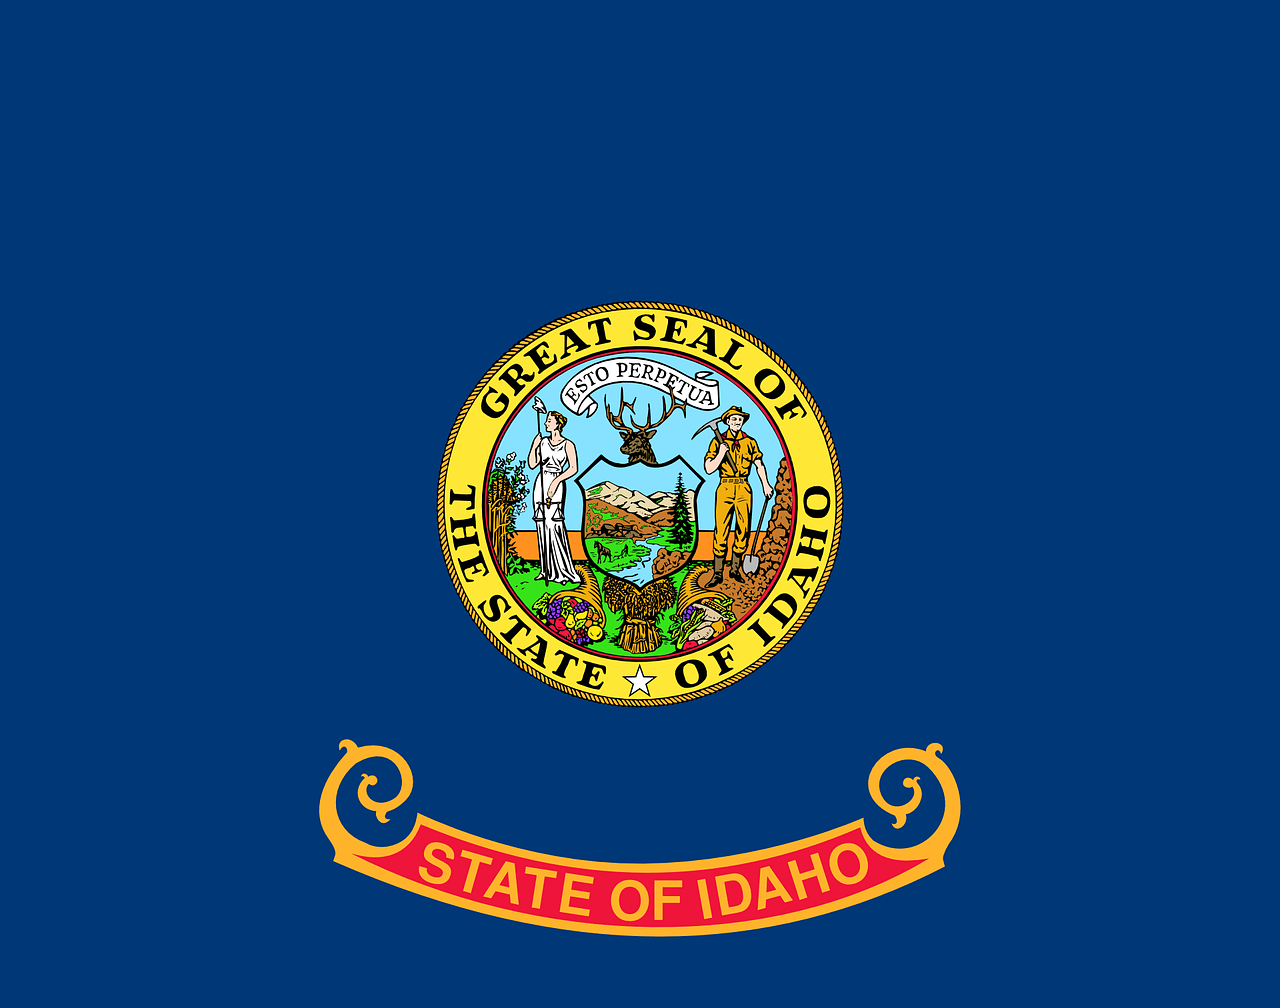 Shasta Signing in Idaho and How it Affects Notaries